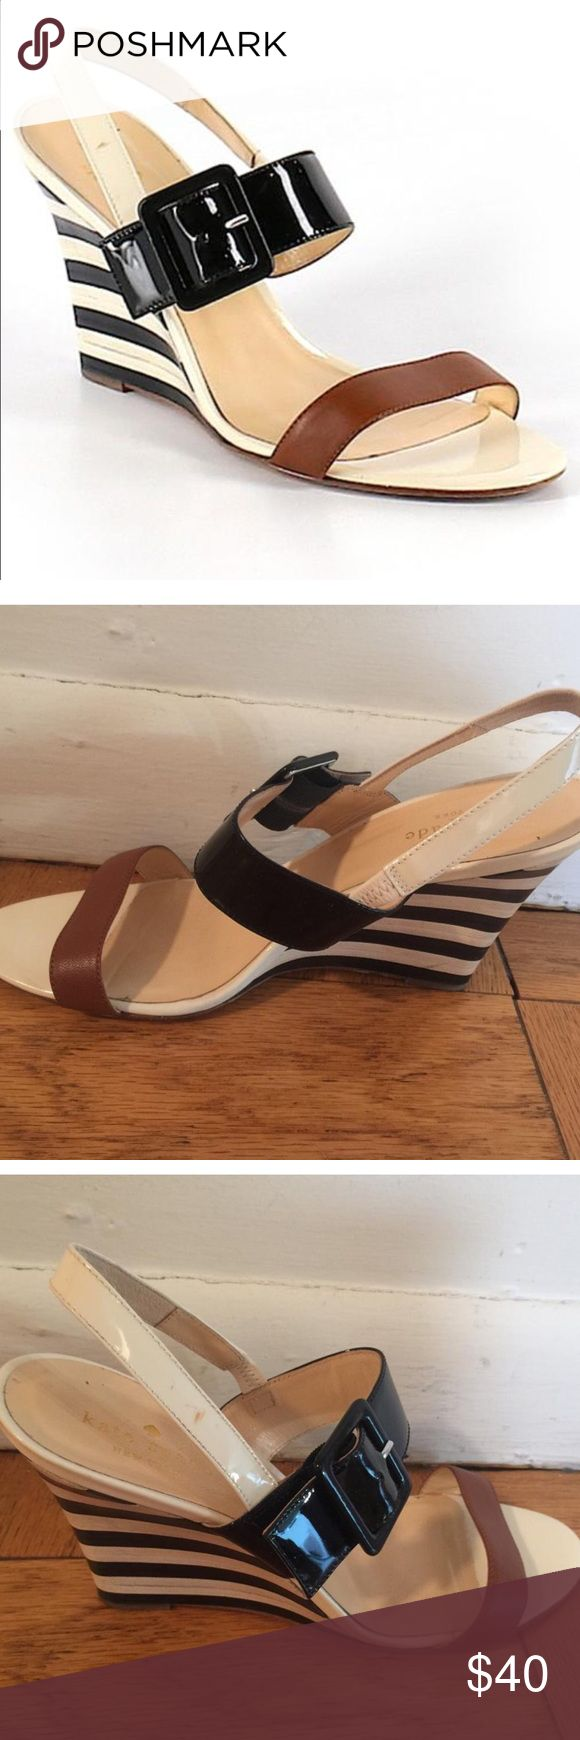 Kate Spade Black and White Striped Wedges One of a kind Kate Spade wedges with black and white striped soles which taper into the in-step for a more defined, flattering shape.  No visible signs of wear other than the bottom of the shoe as you can see in the pic (only worn once). kate spade Shoes Sandals